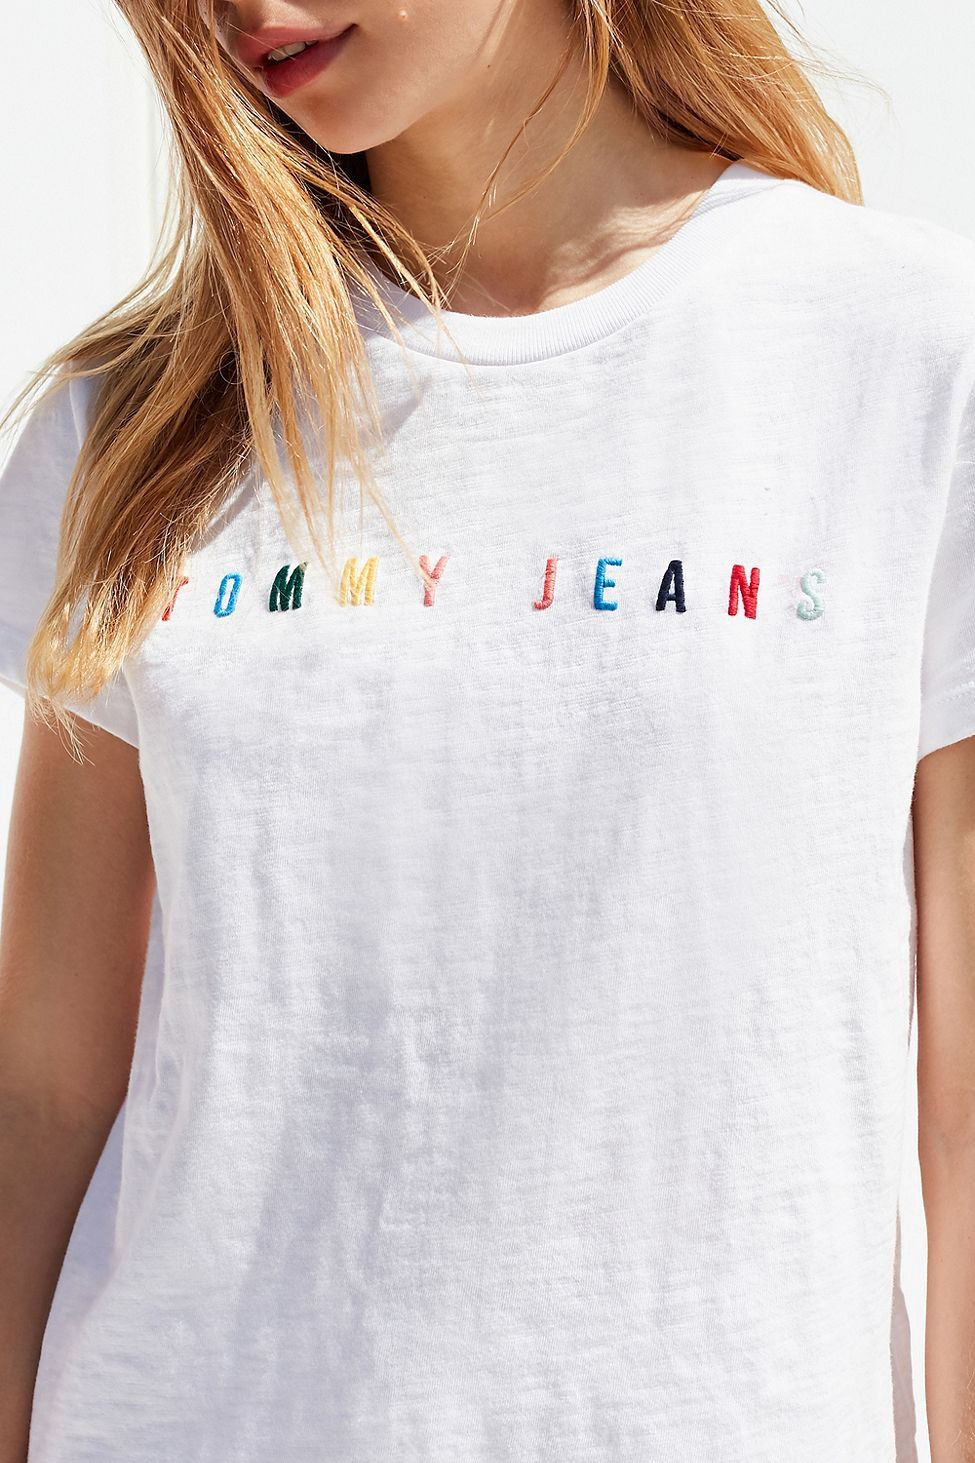 1938603902b31 Urban Outfitters Tommy Jeans Rainbow Logo Tee - White | Products ...